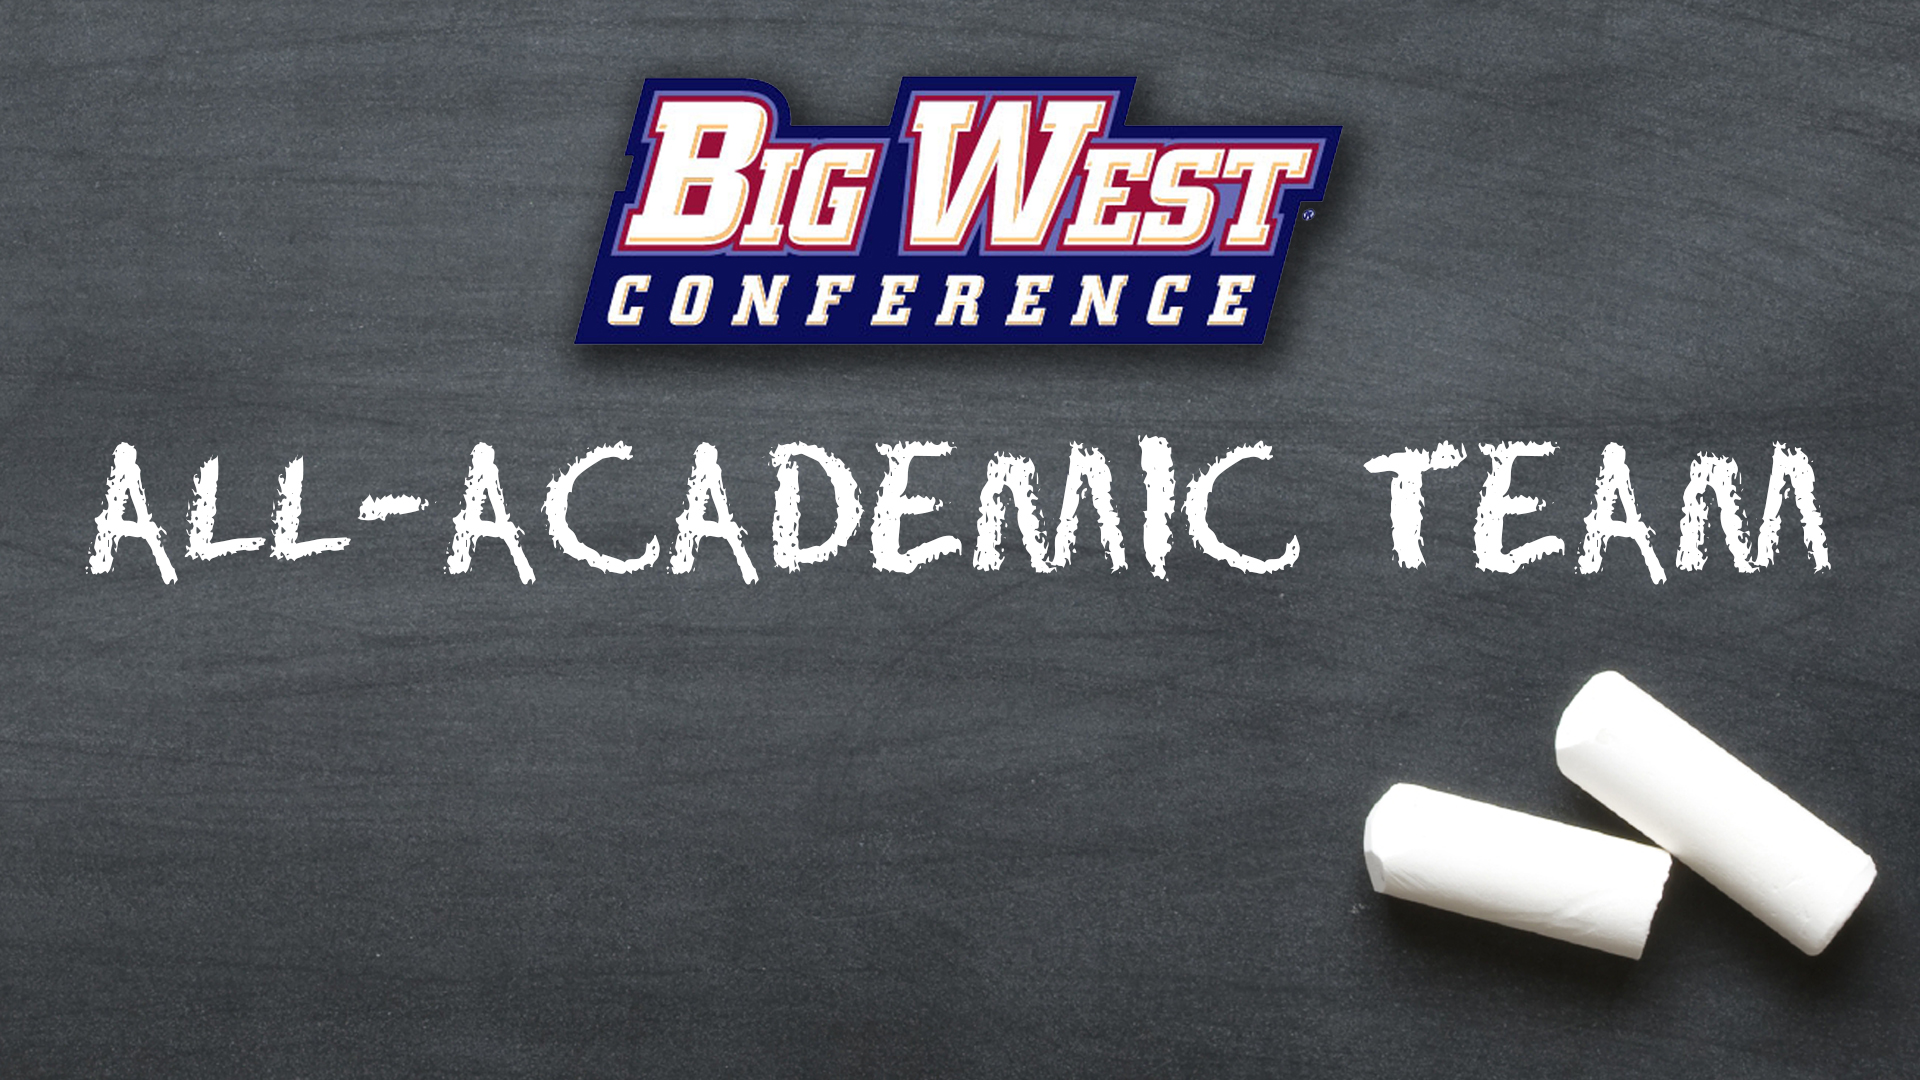 Total of 66 Aggies honored as Big West All-Academic